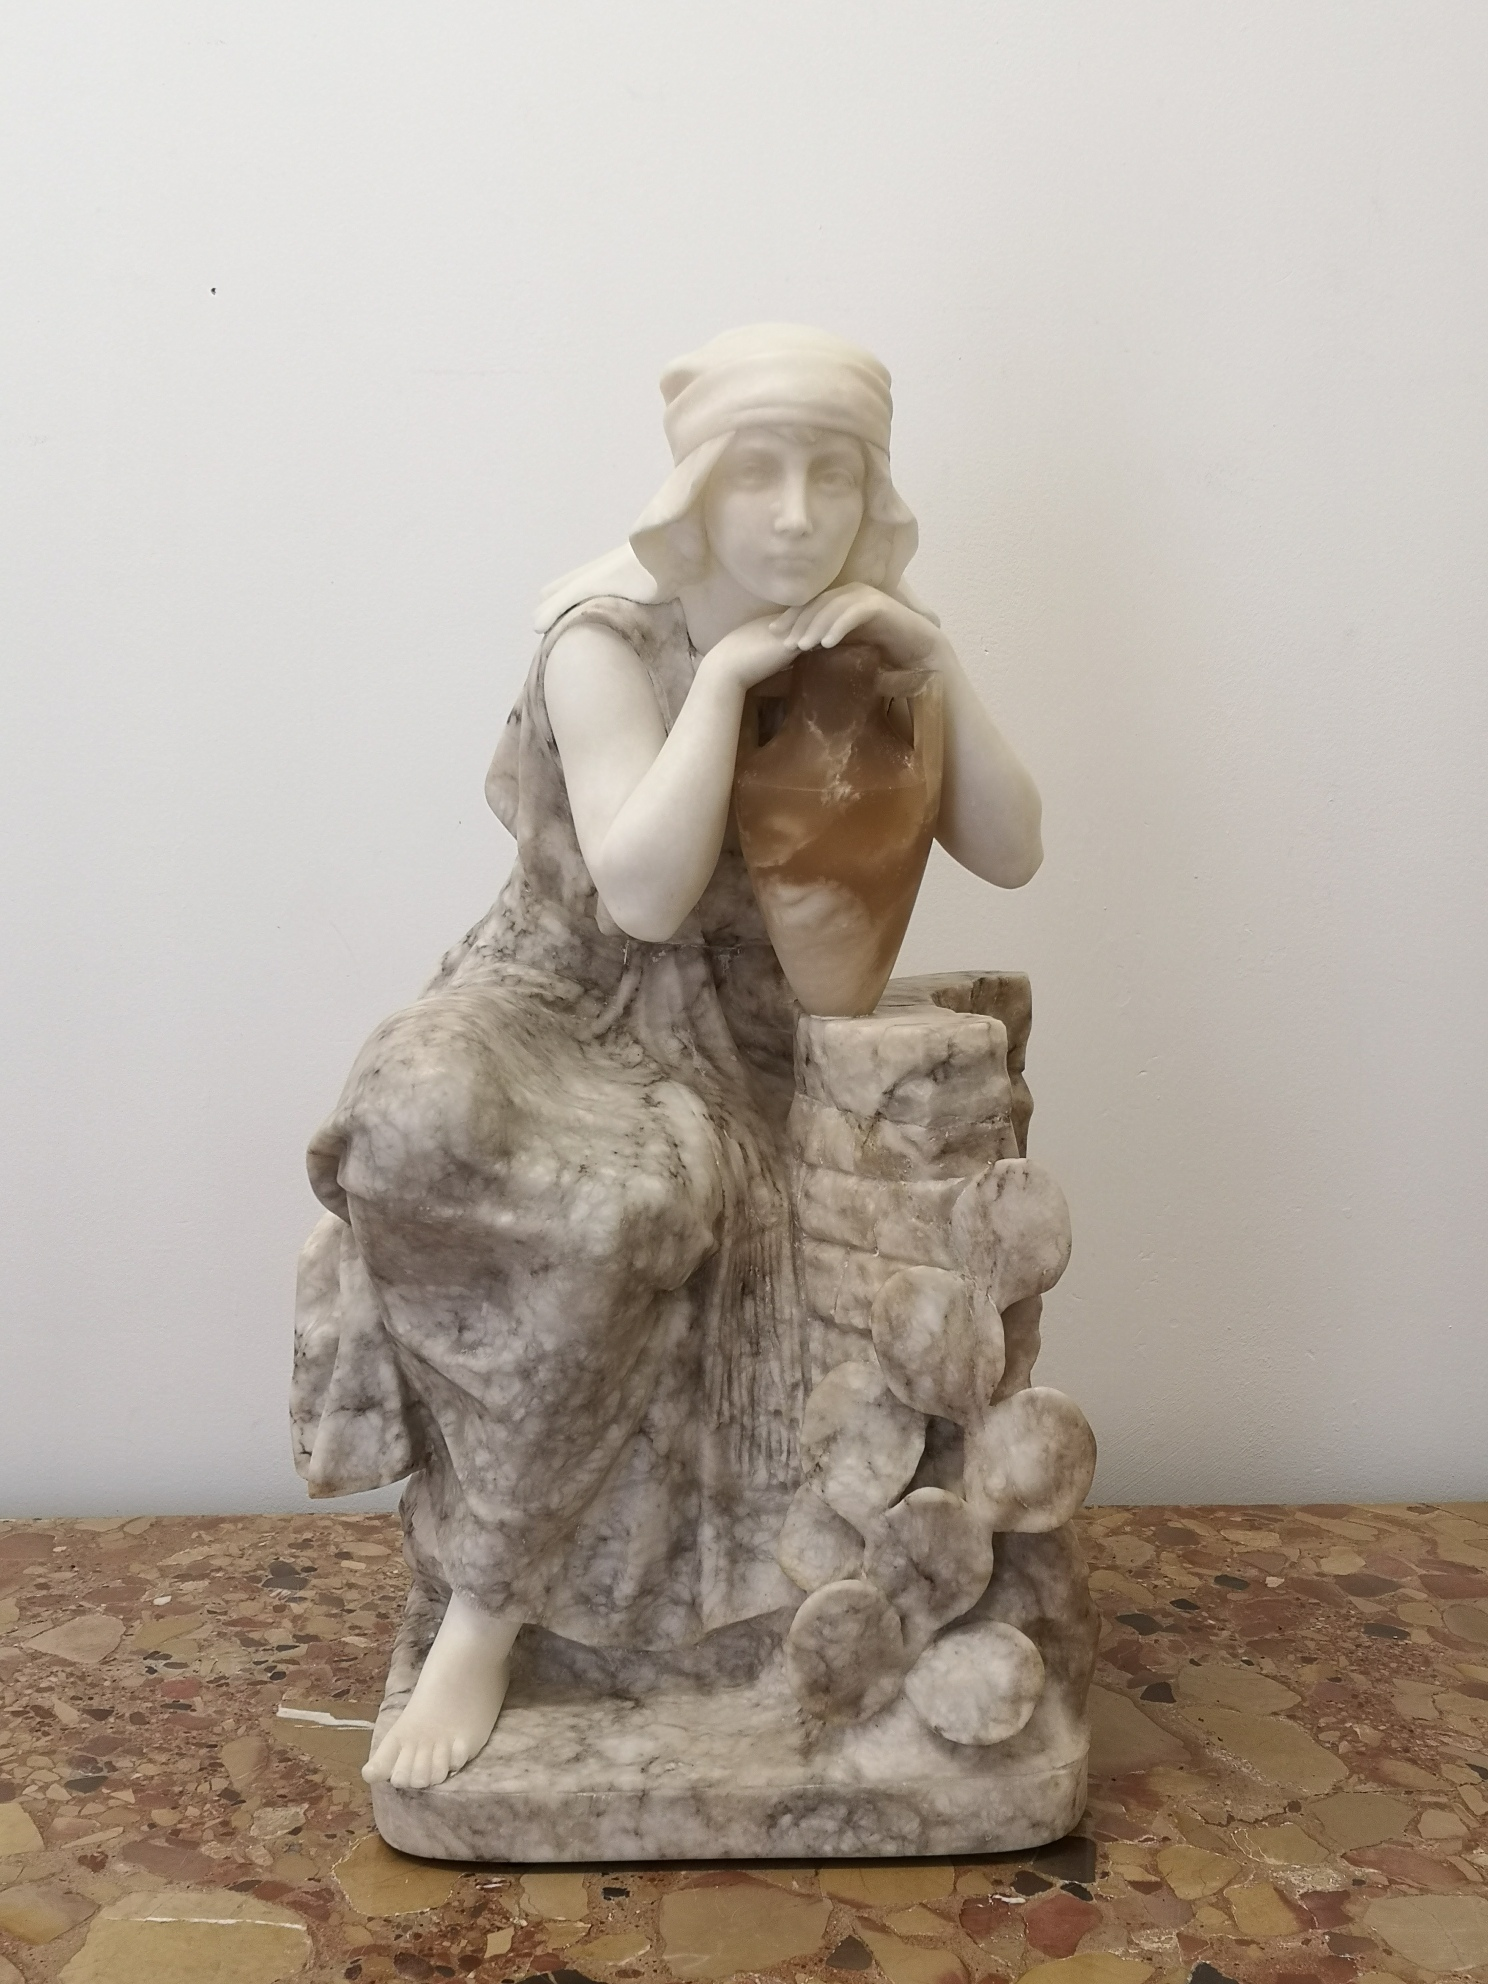 19th Century Italian Alabaster Sculpture Of Woman Water Carrier By Pugi